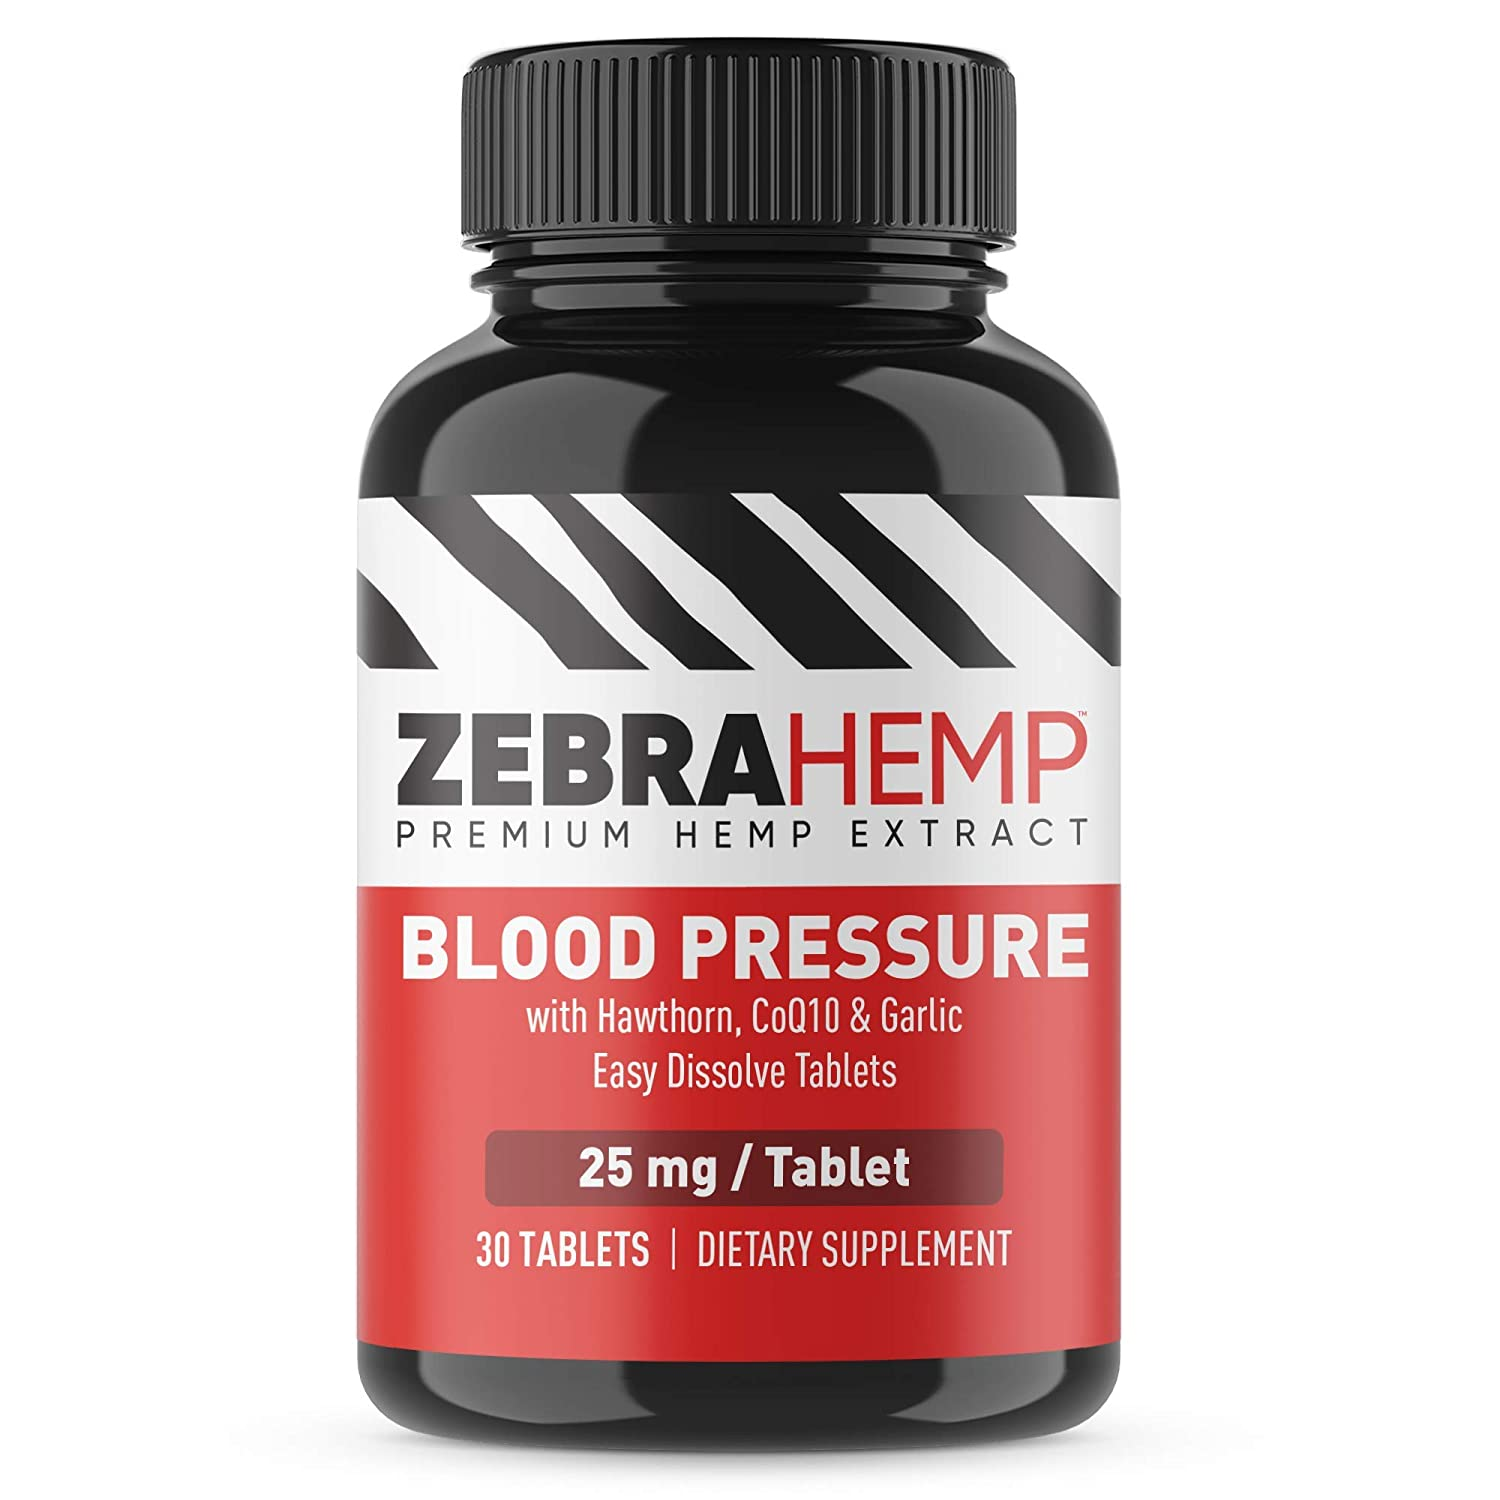 ZEBRA HEMP Blood Pressure Support Easy Dissolve Tablets - Premium Hemp Extract + Hawthorn, CoQ10, Garlic Powder for Cardiovascular & Circulatory Health - 30 Tablets